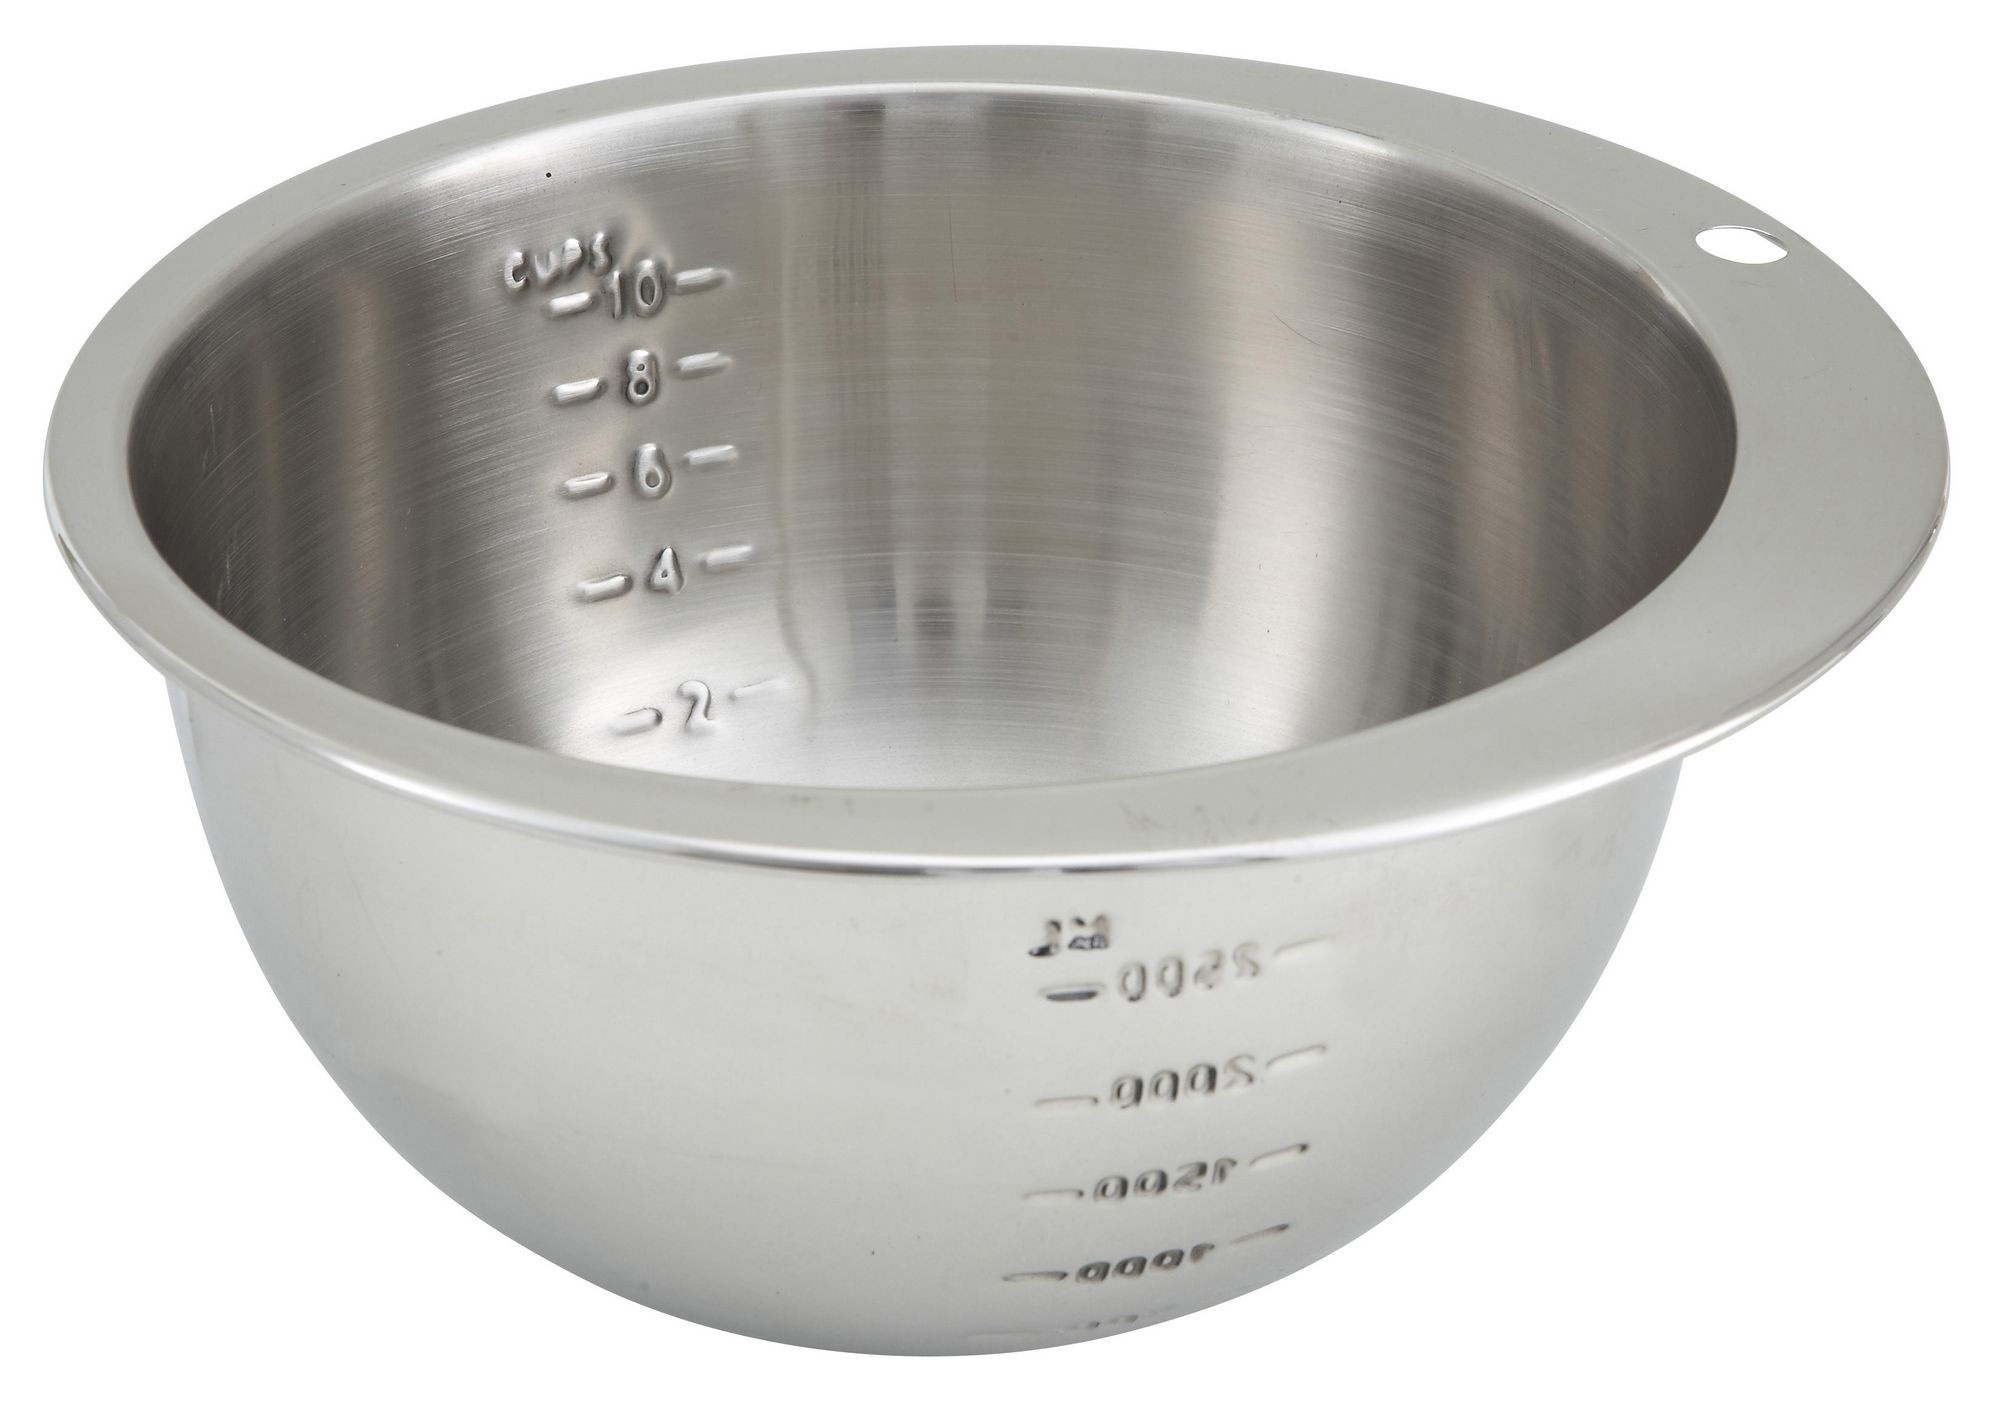 Winco SMB-10 Stainless Steel Measuring Bowl, 10 Cup